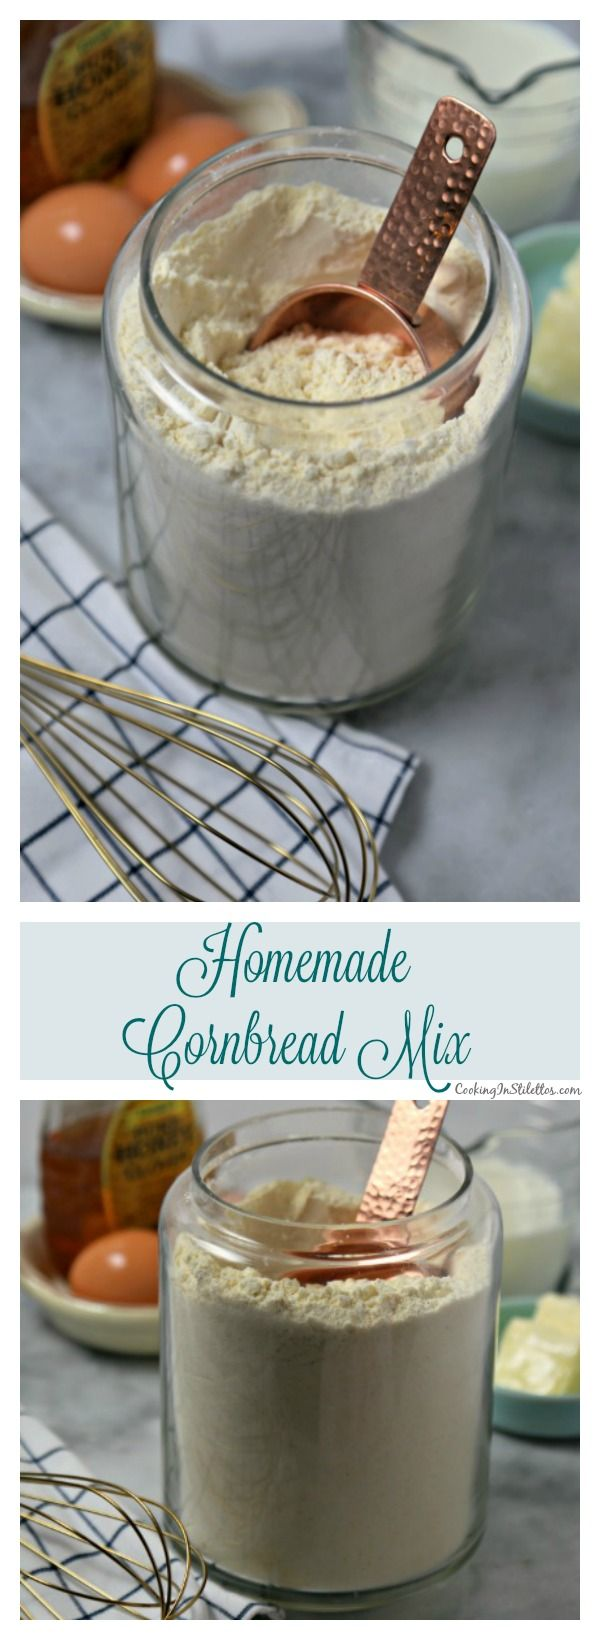 This easy Homemade Cornbread Mix from CookingInStilettos.com can be made in minutes with just a few ingredients that are already in your pantry.  This pantry staple is a must for busy weeknights when you want to make cornbread or corn muffins to go with your favorite soup, stew or chili!